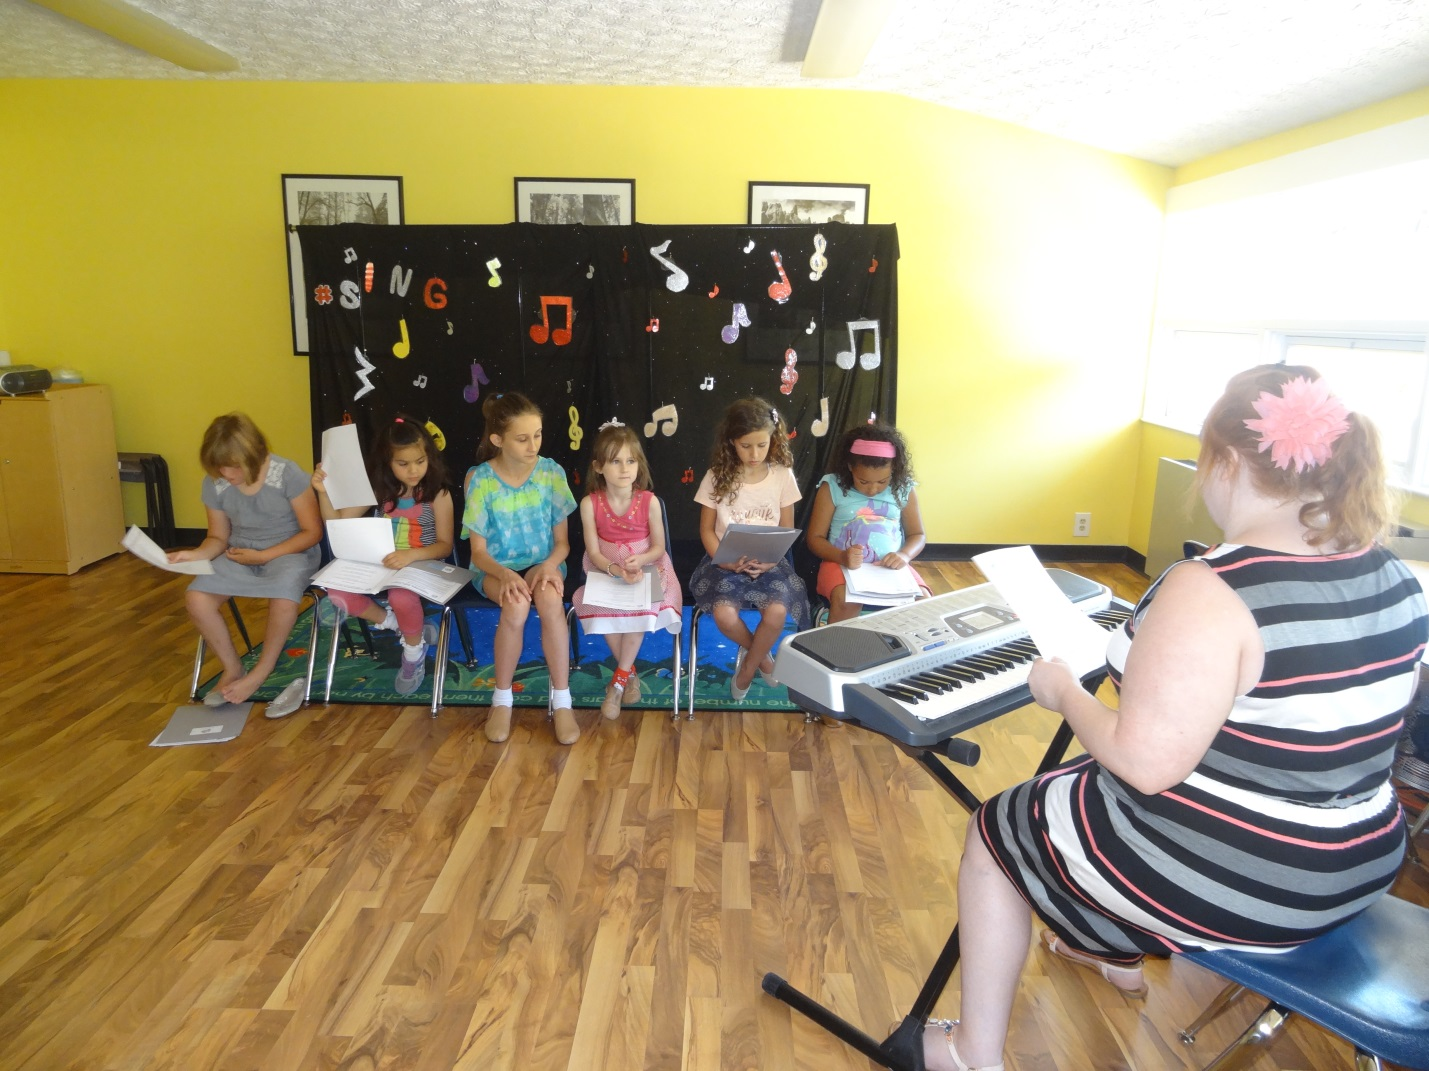 Singing Is Important for Children